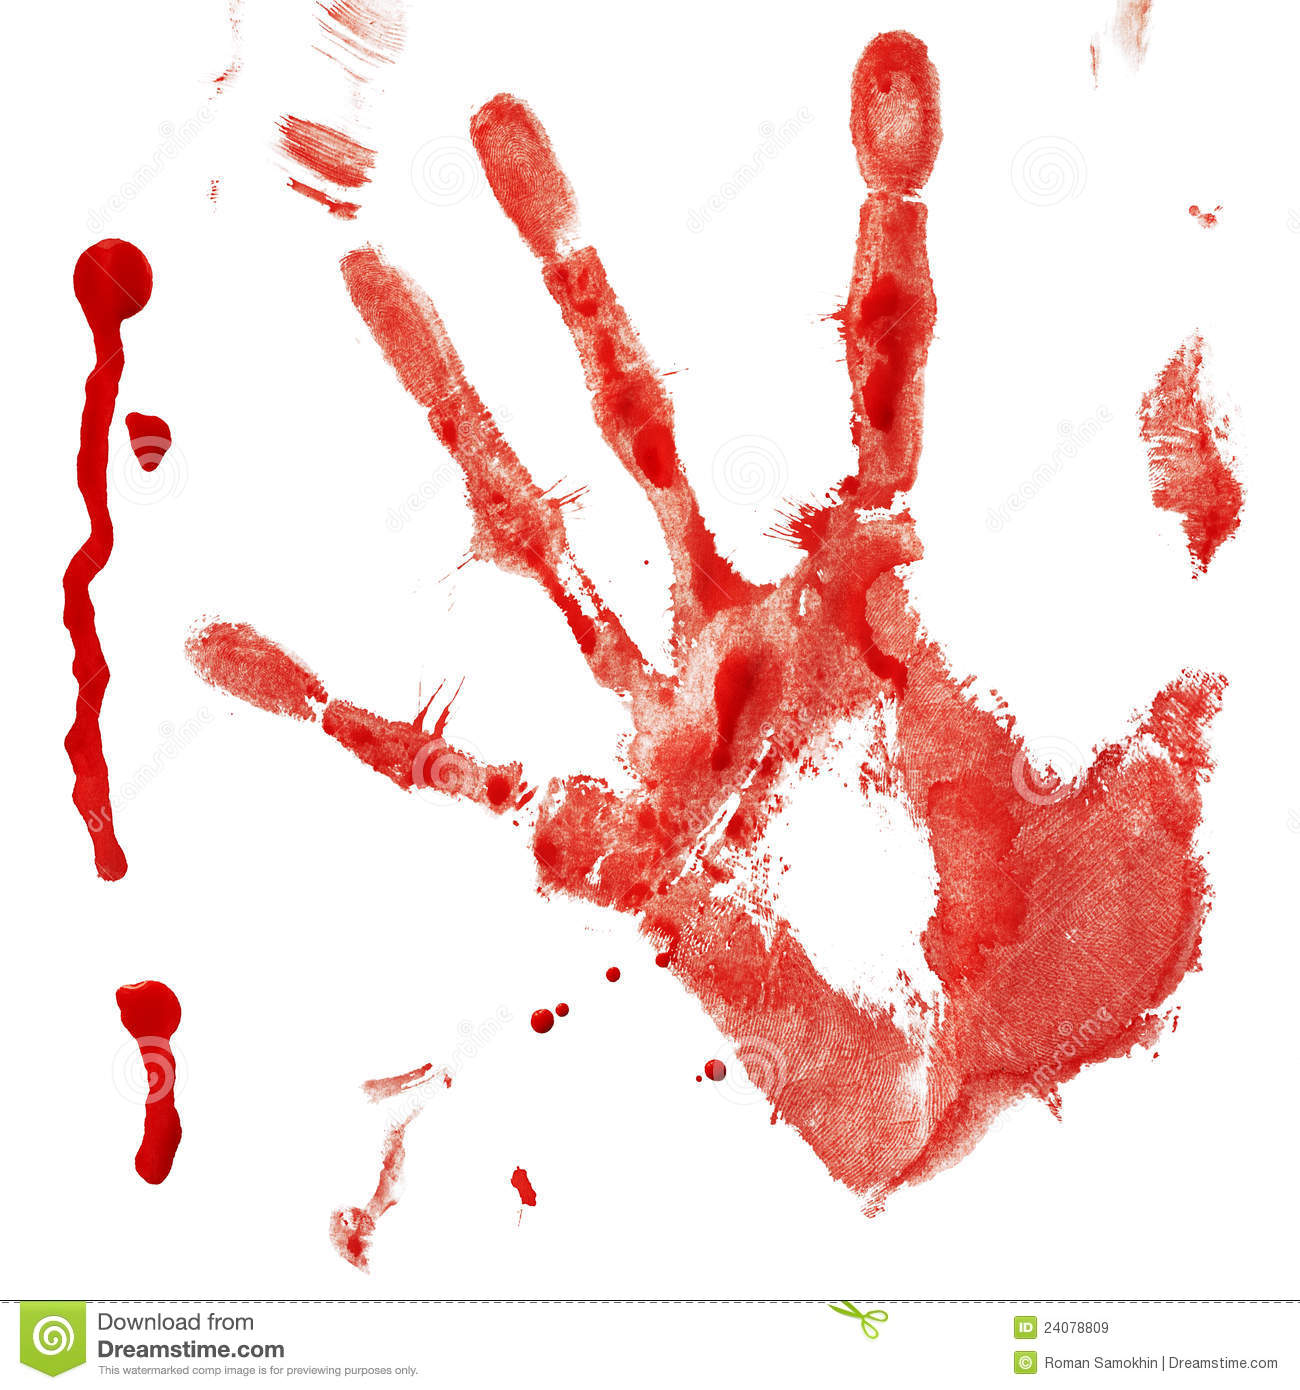 Black paint splatter wallpaper - Bloody Handprint With Drop Royalty Free Stock Images